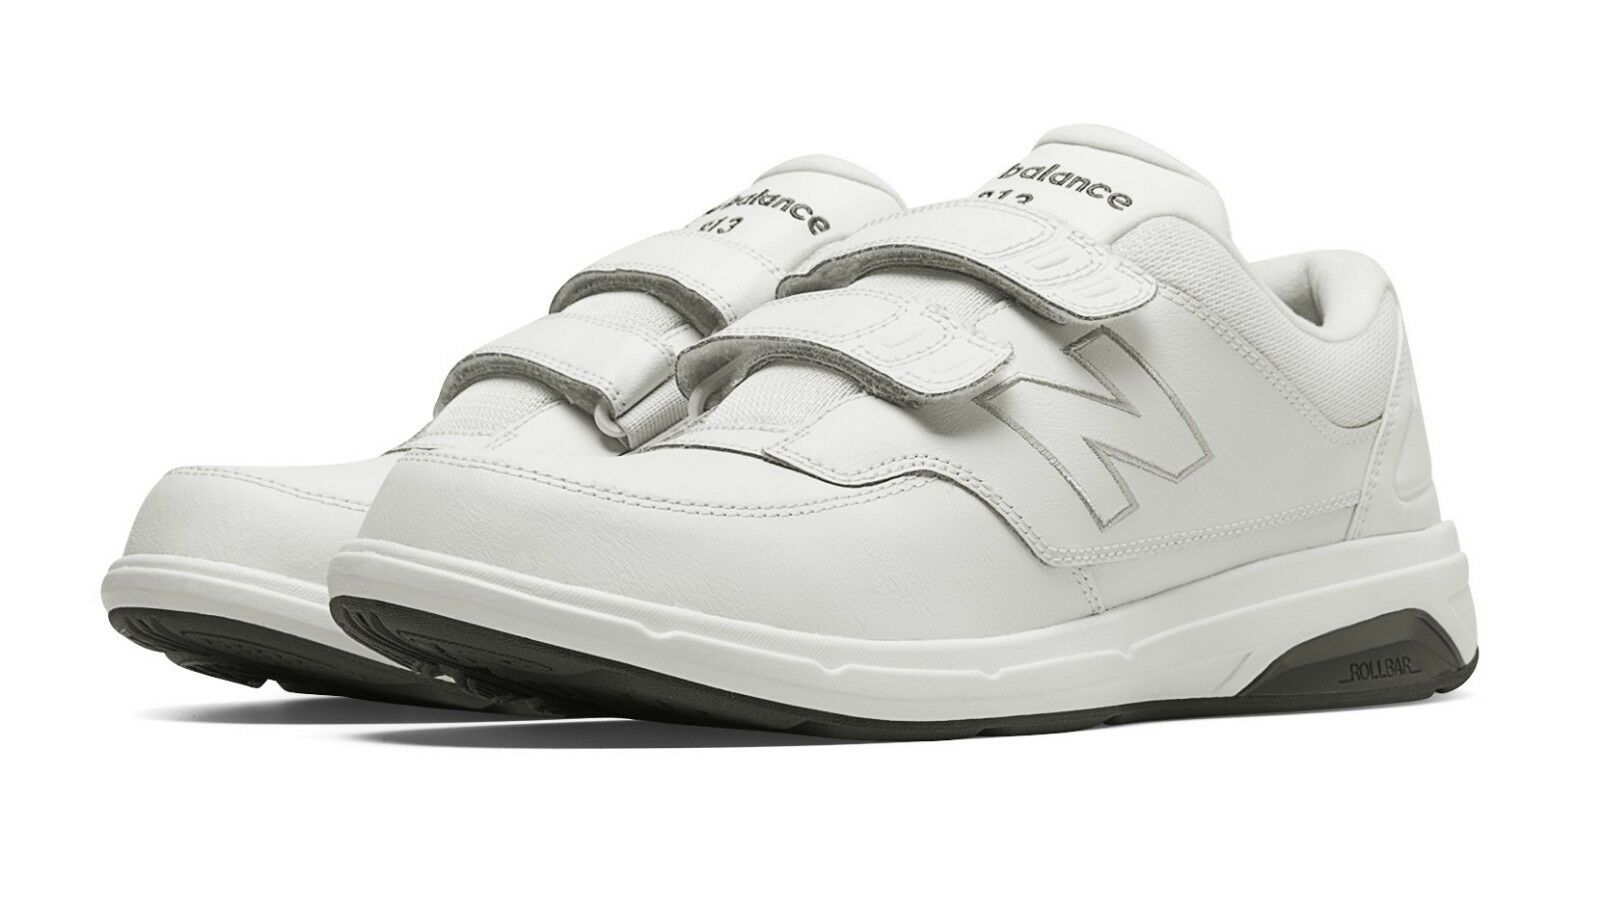 New Balance MW813HWT Men's Hook and Loop 813 White Leather Walking shoes